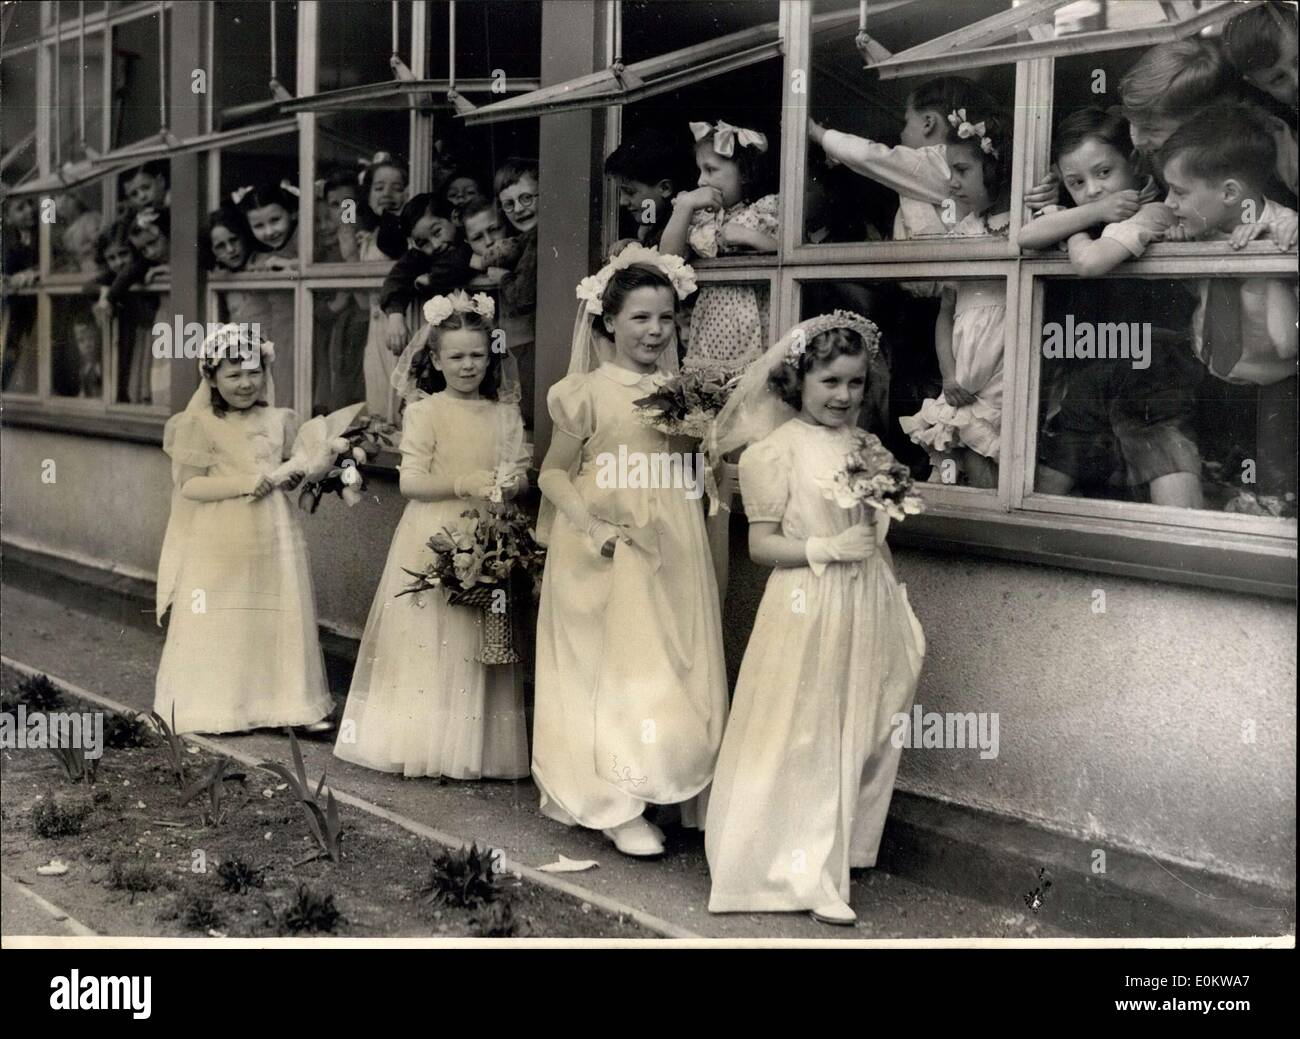 May 02, 1950 - May Day ceremonies at the Hugh Eyddleton School the Youngsters look on; Photo Shows Four of the tiny May Queen's - Stock Image